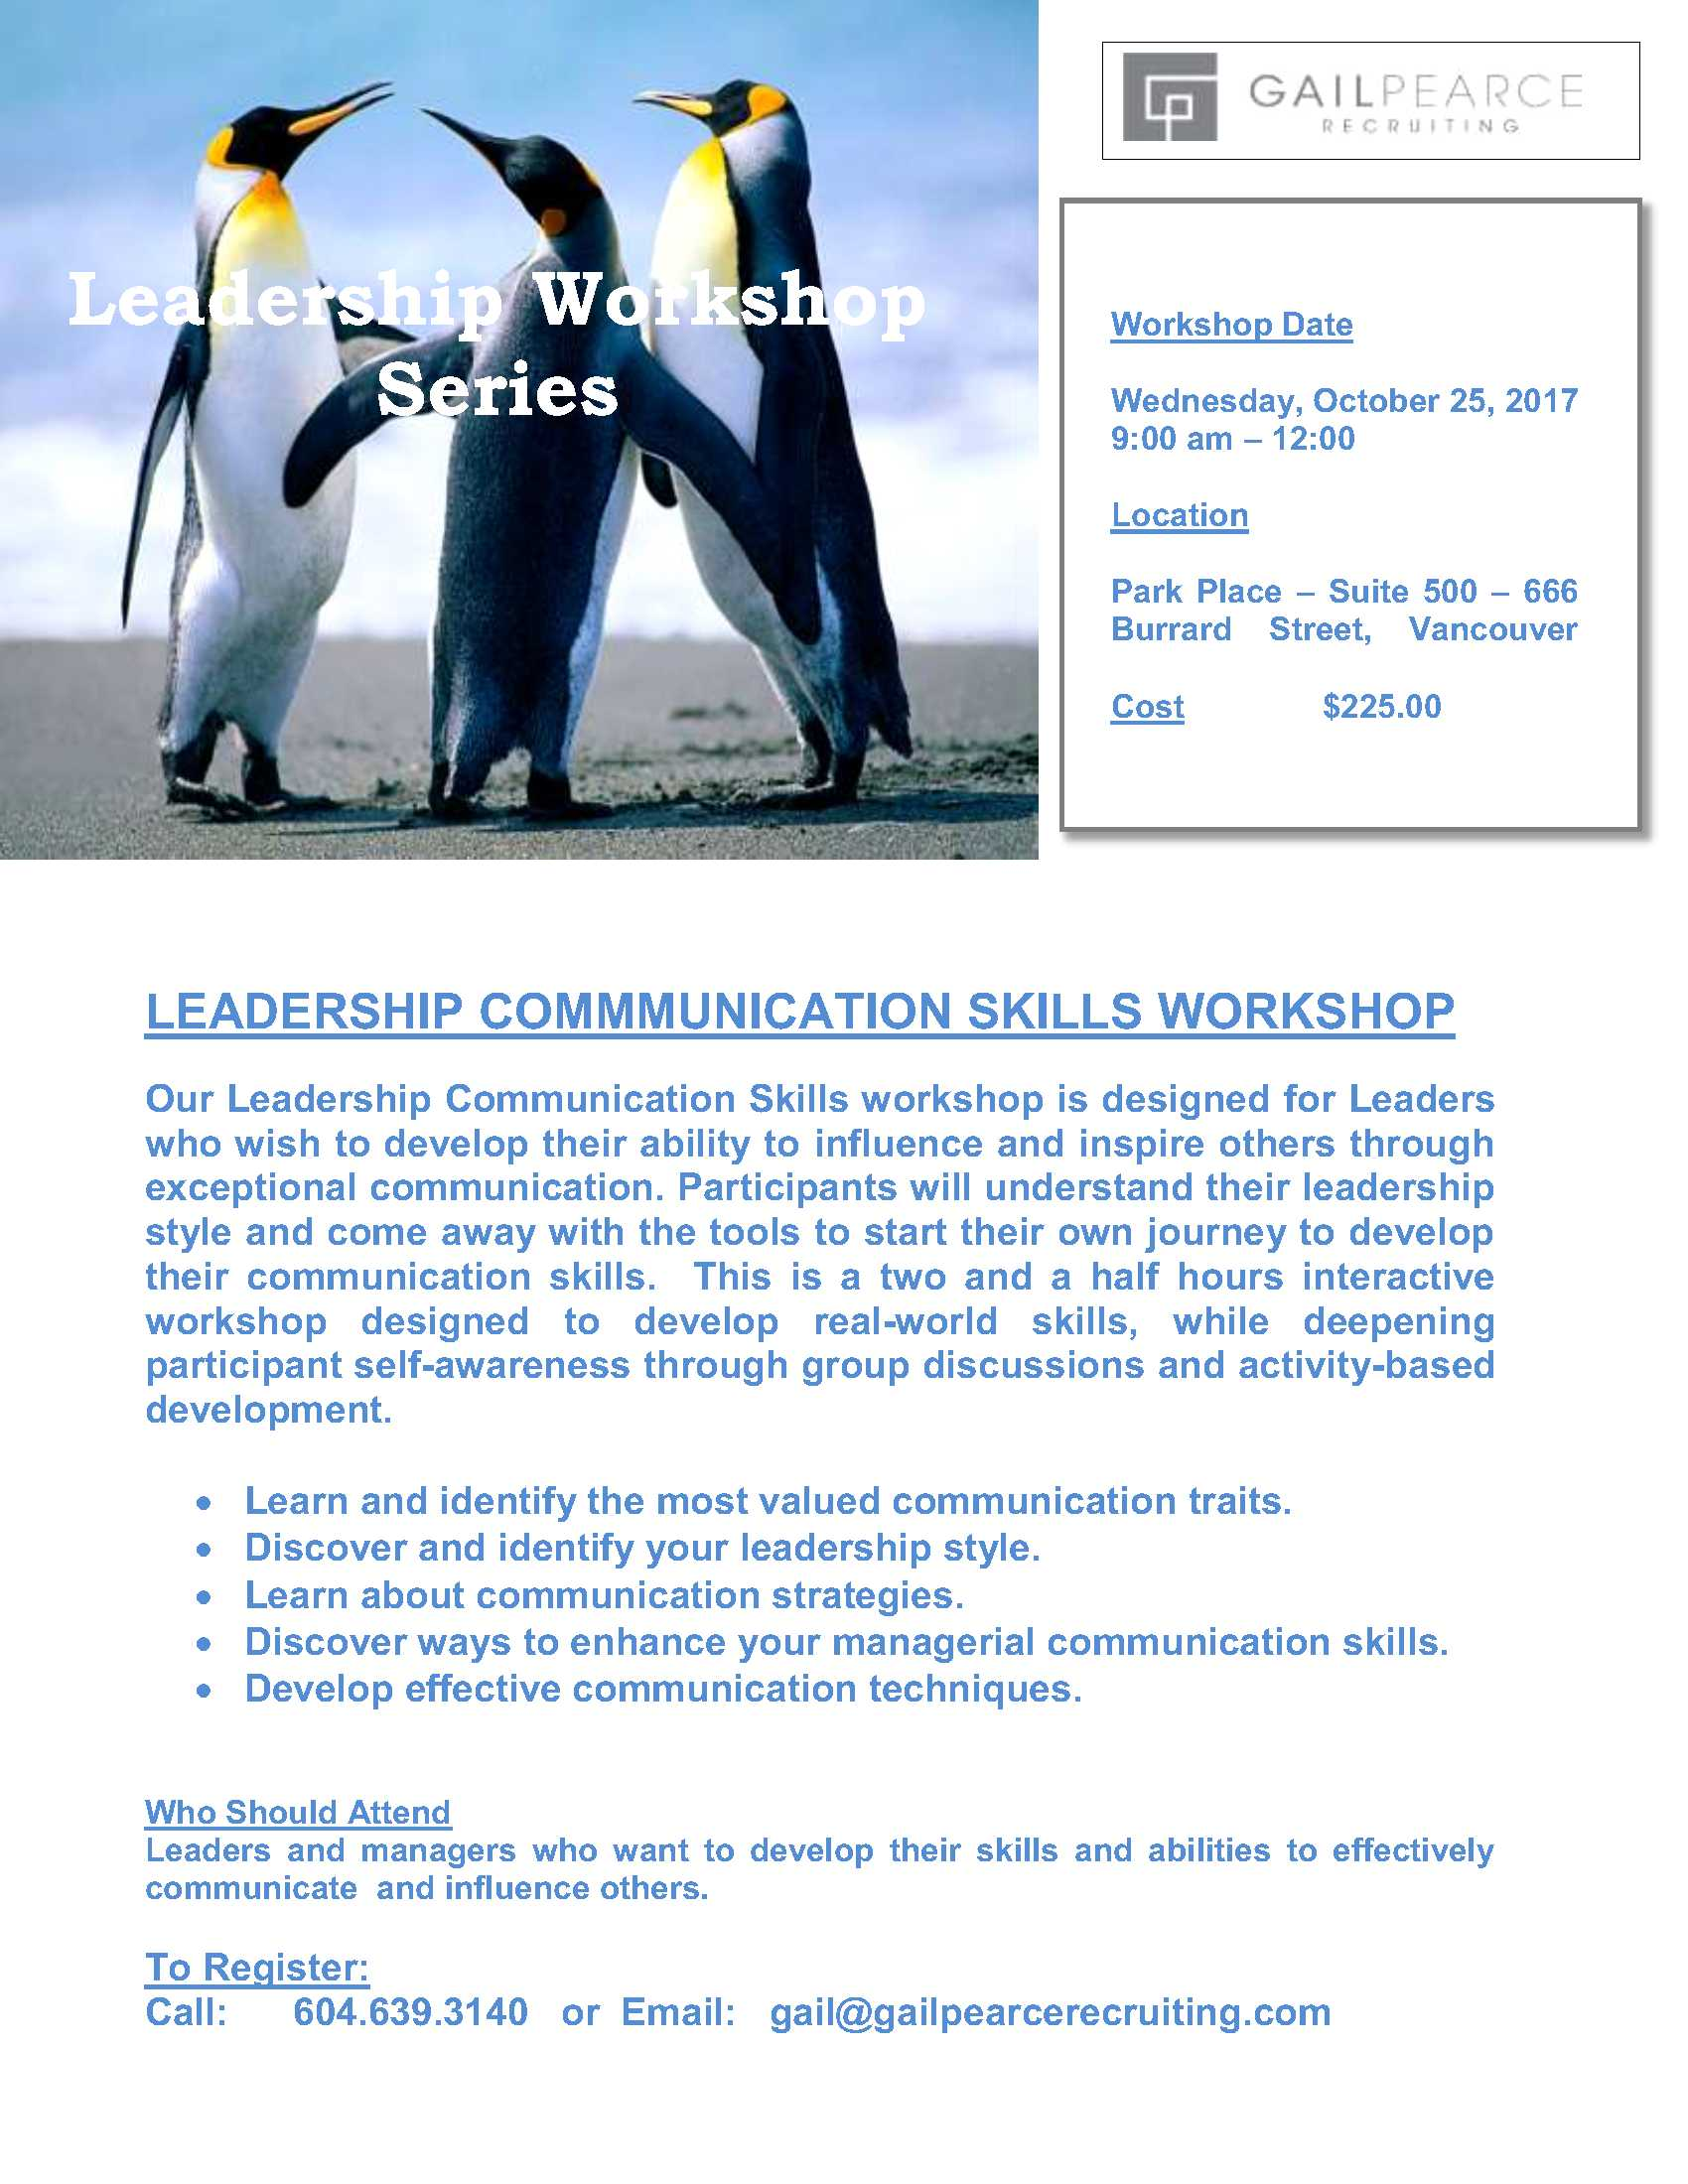 Nothing but Leadership: Does Leadership = Communication? |Leadership Communication Skills